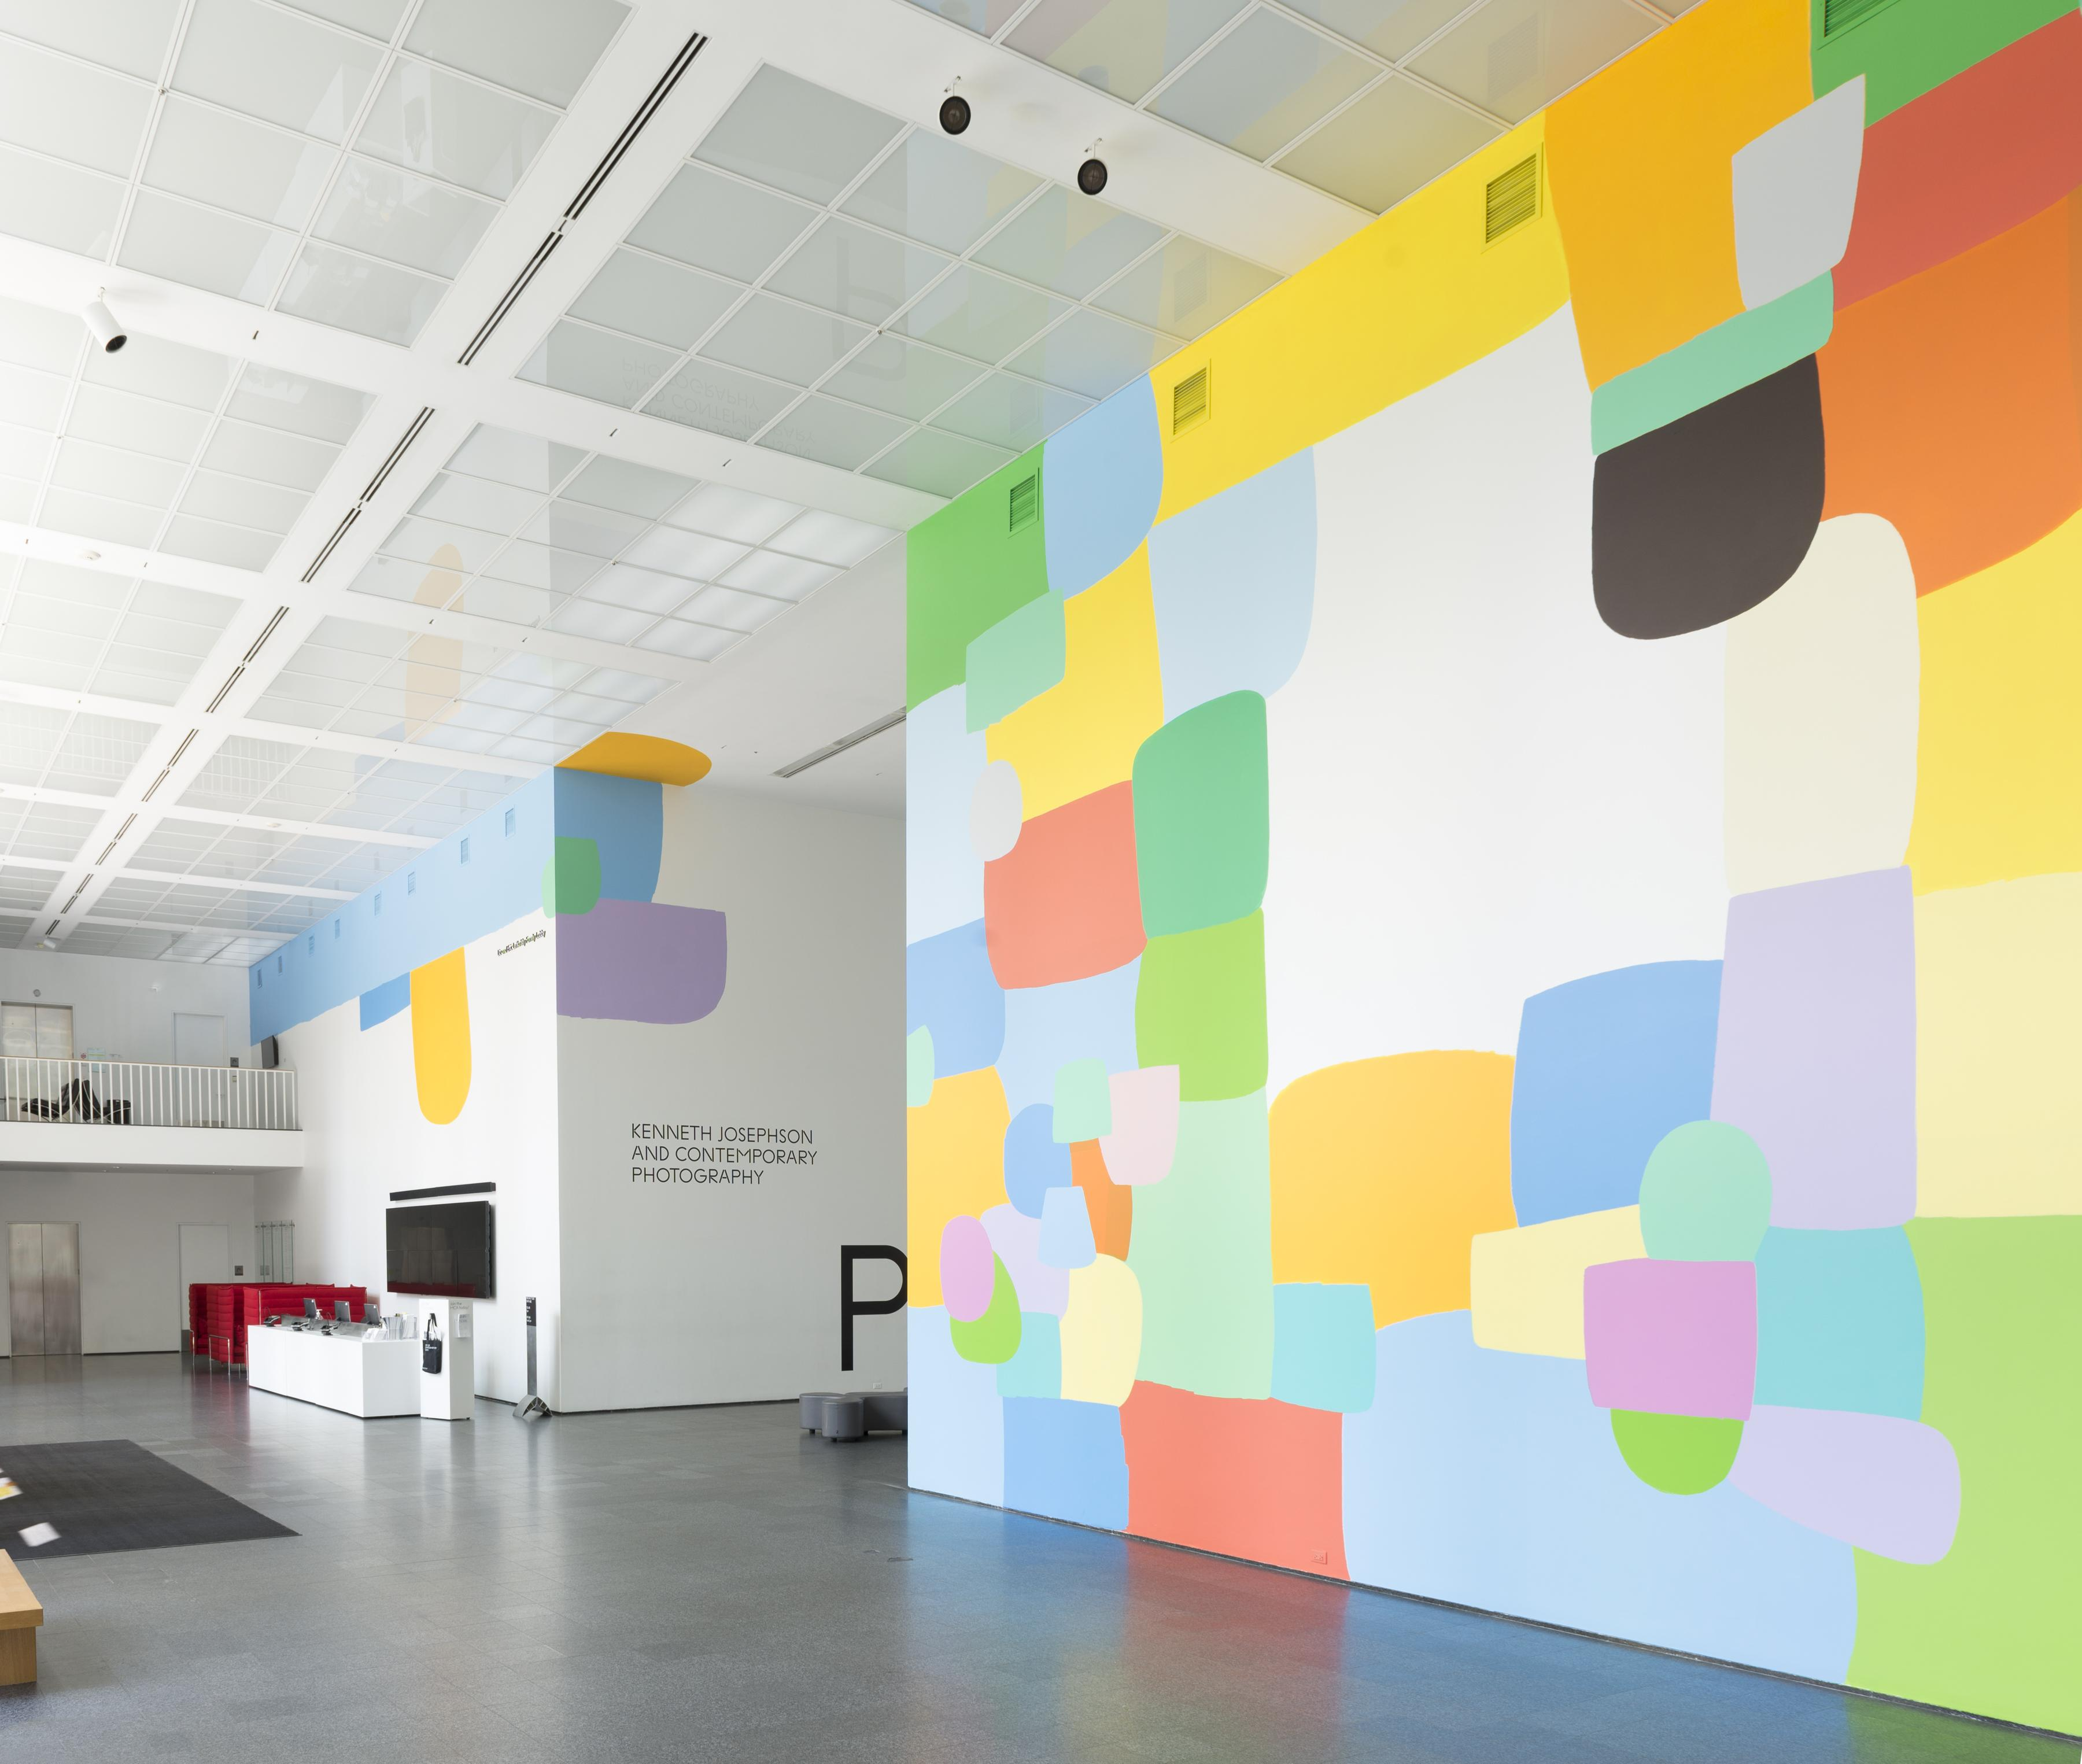 The MCA Atrium features a prominent, colorful mural on multiple walls.